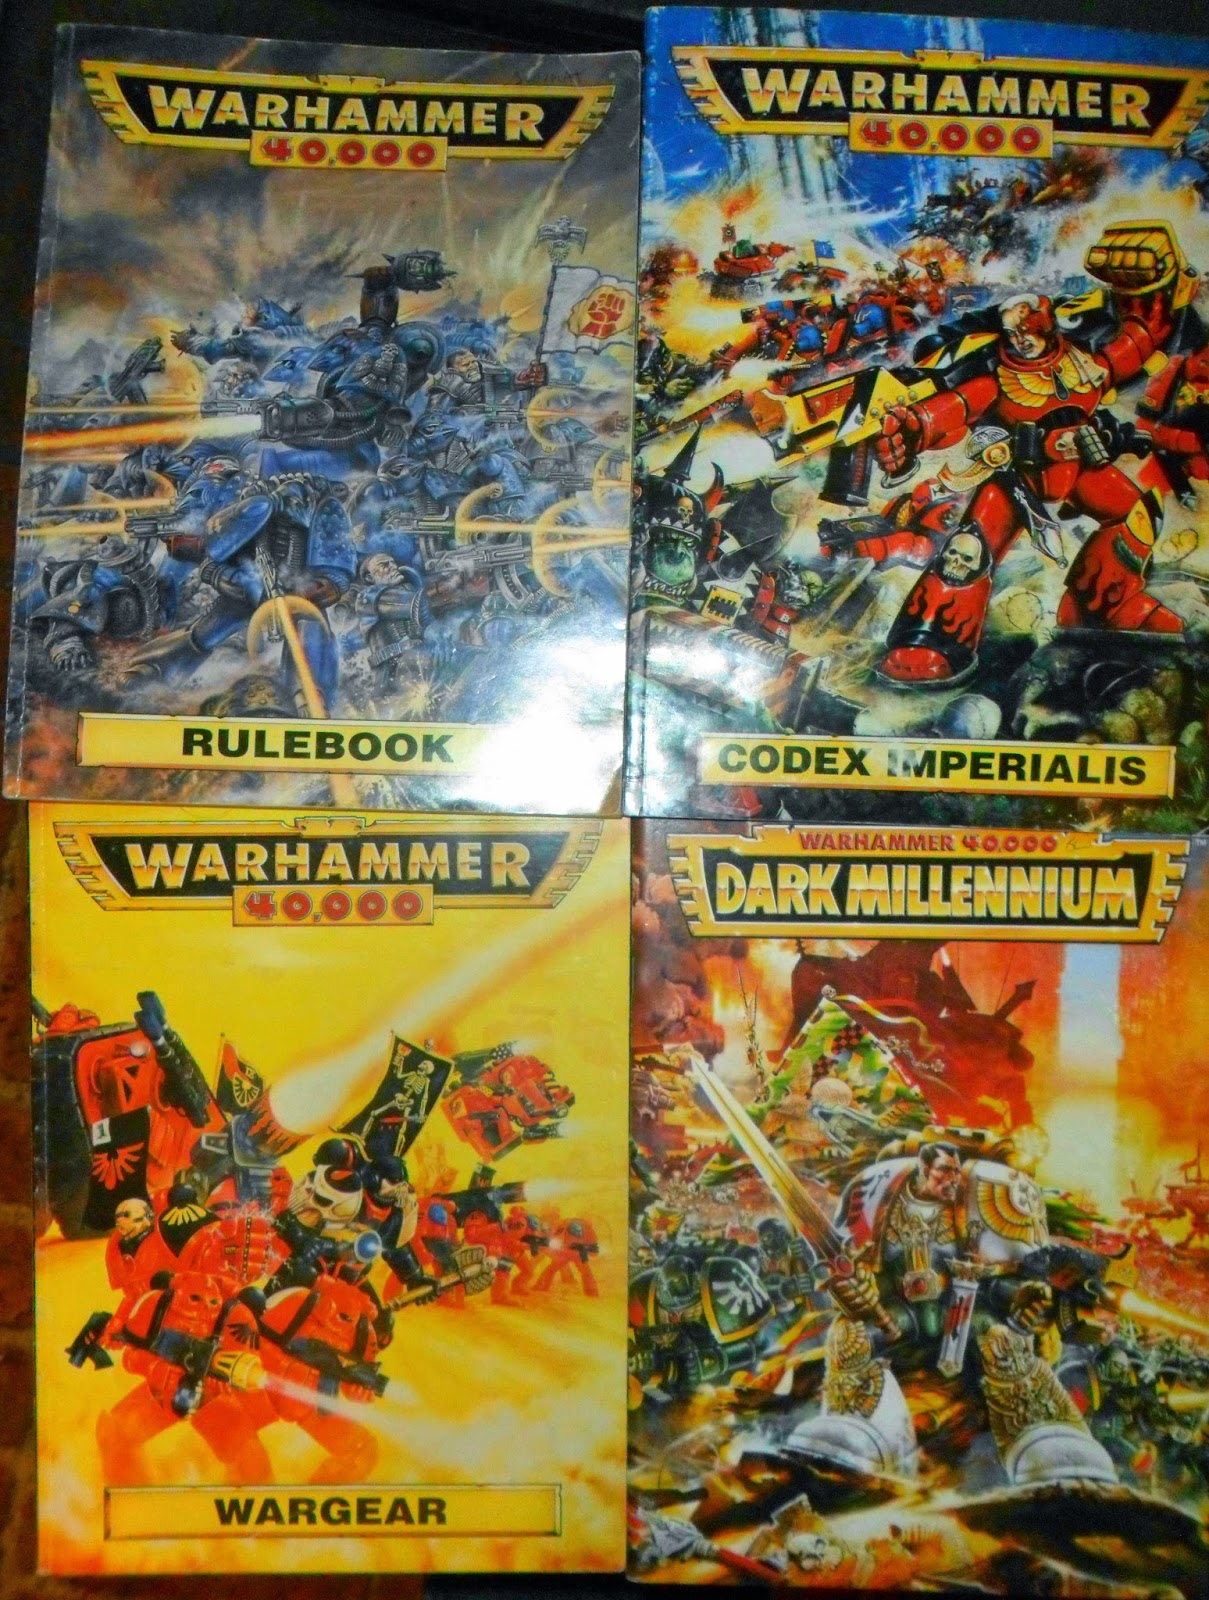 Wargame Dork: [Operation Game Collection] Rogue Trader Warhammer 40K